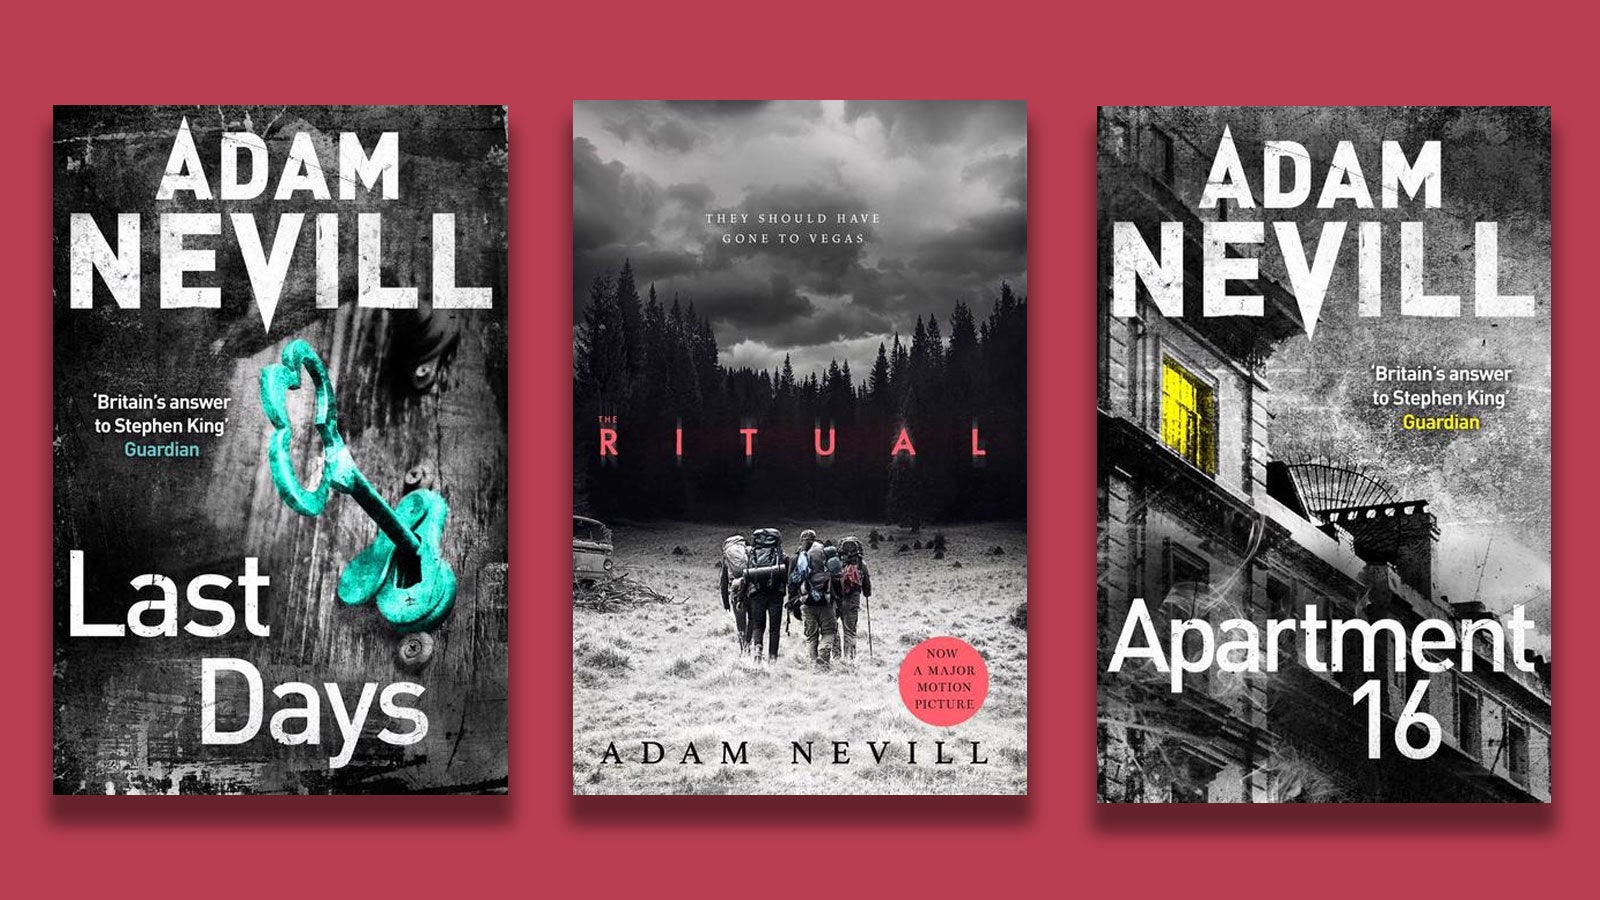 Three of Adam Nevill's books, Last Days, The Ritual and Apartment 16 on a red background.